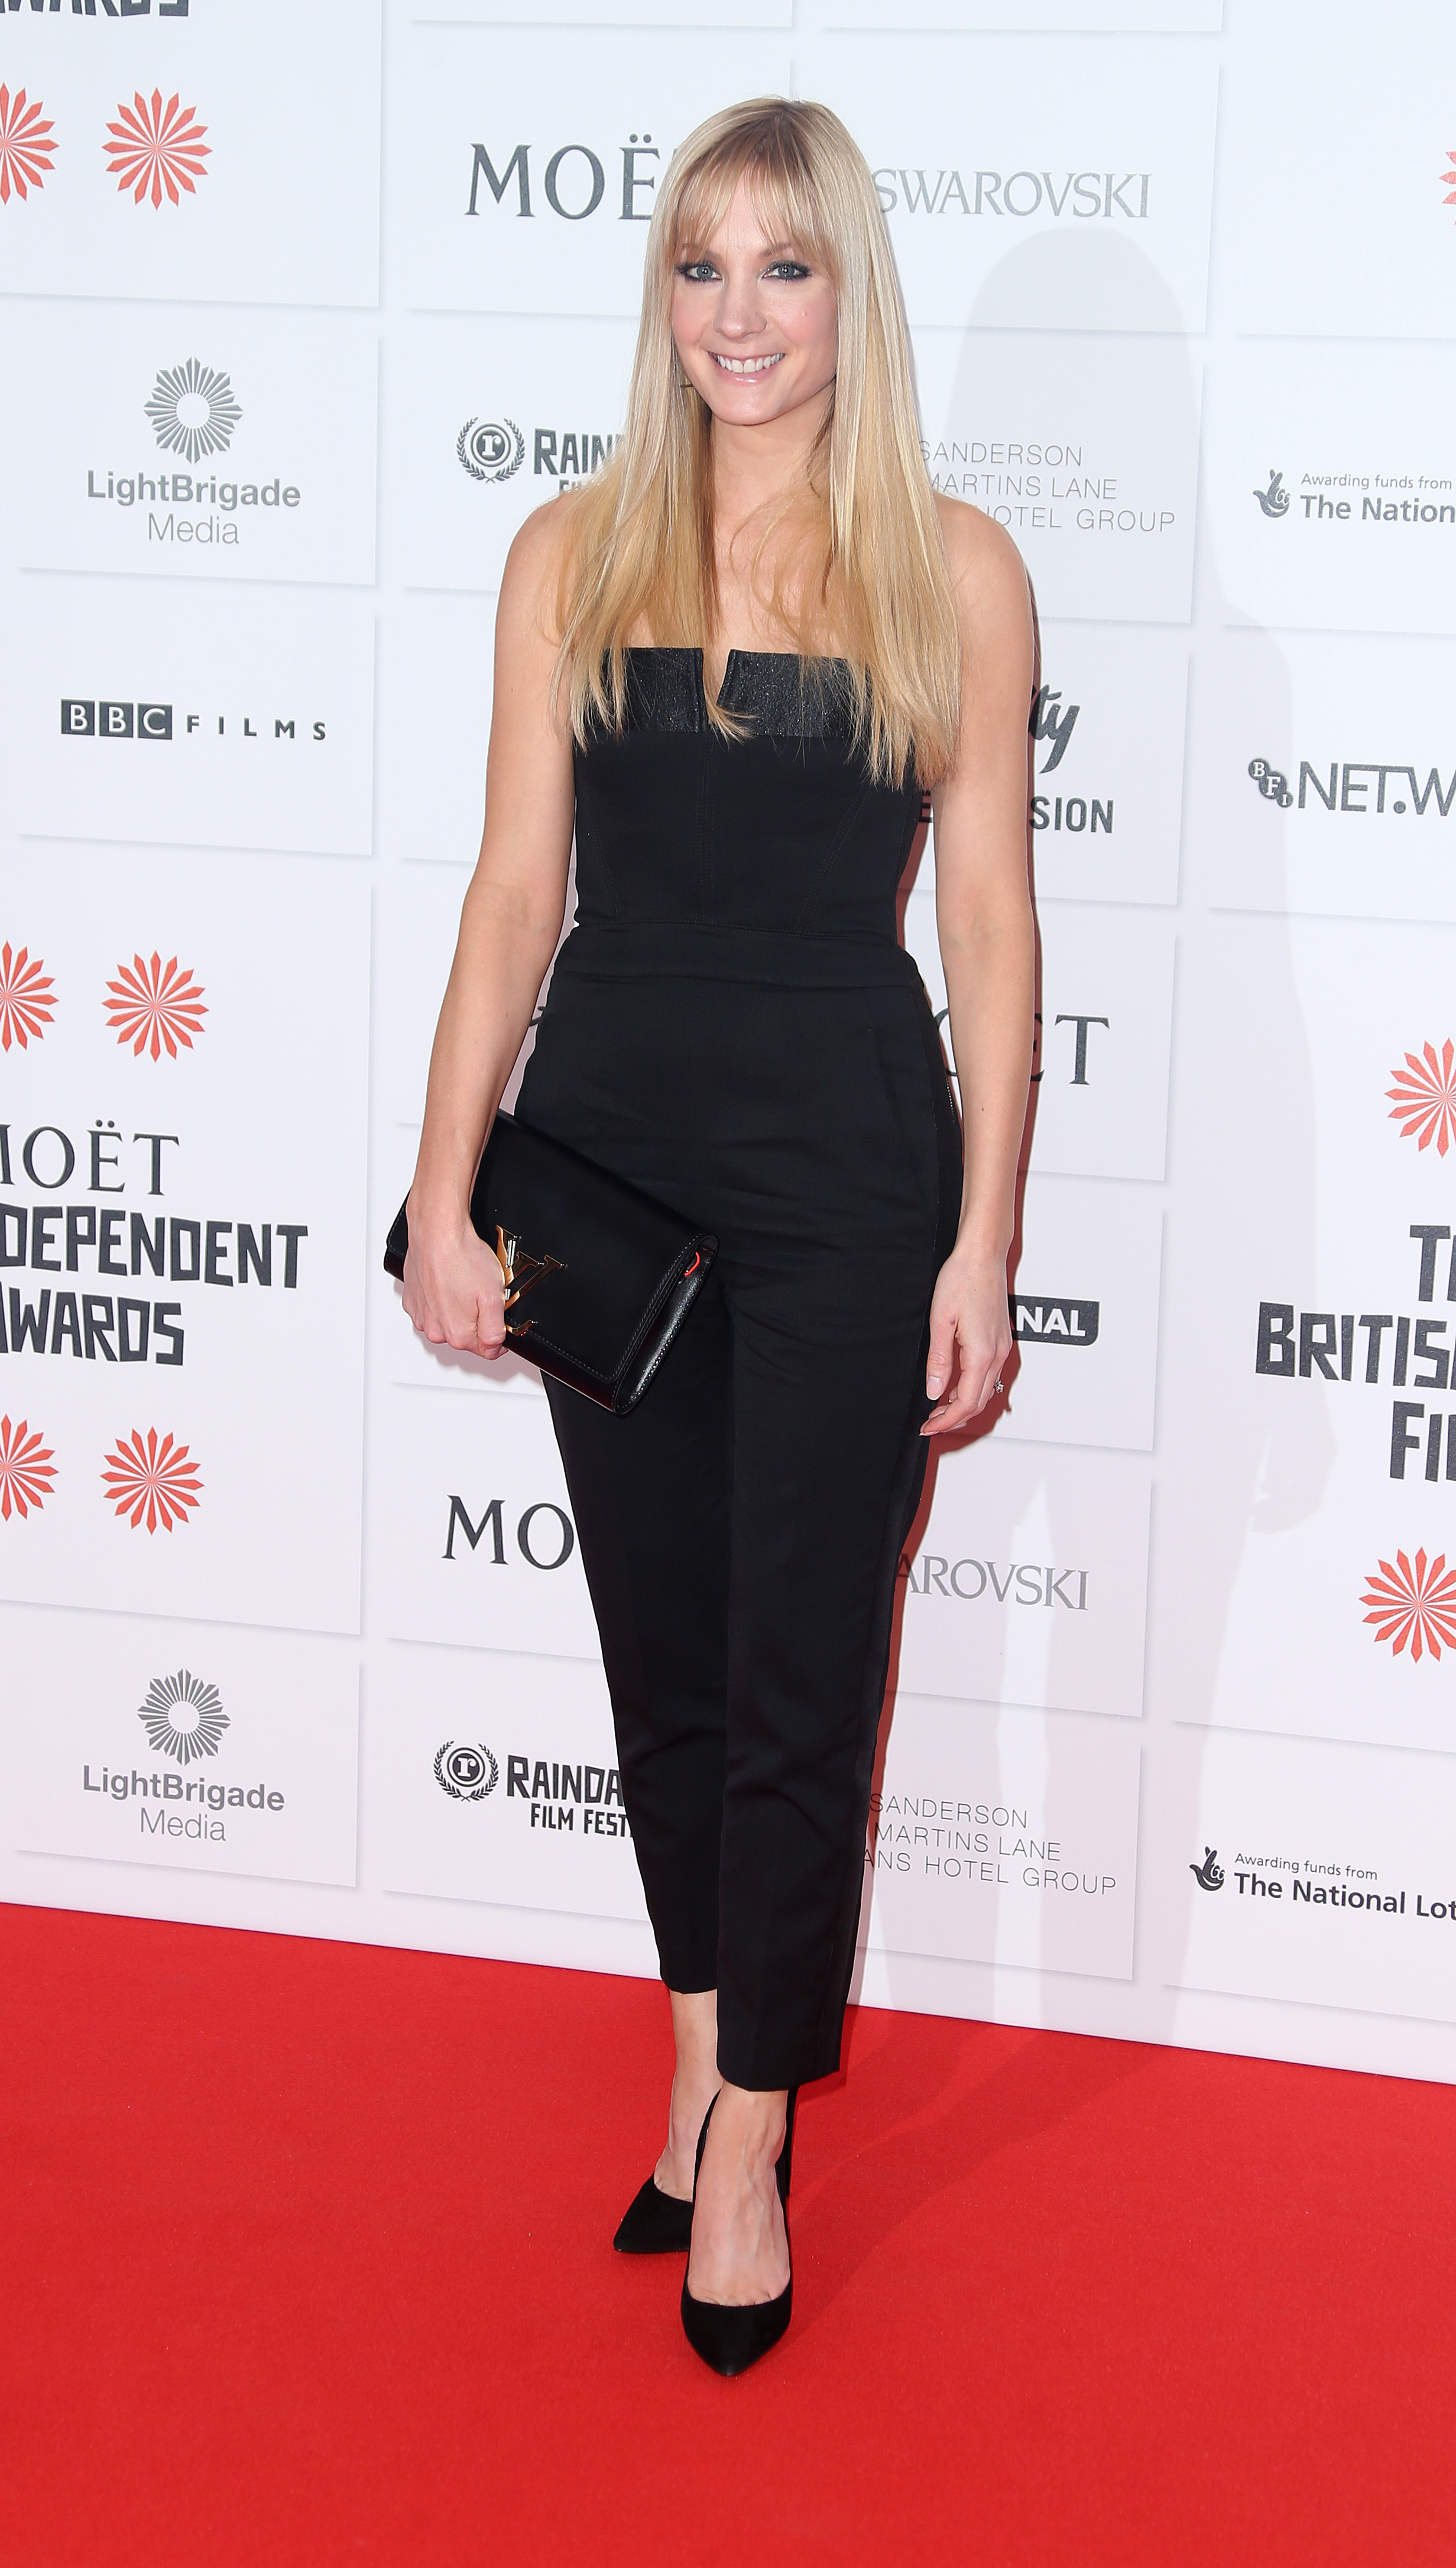 The Moet British Independent Film Awards - London